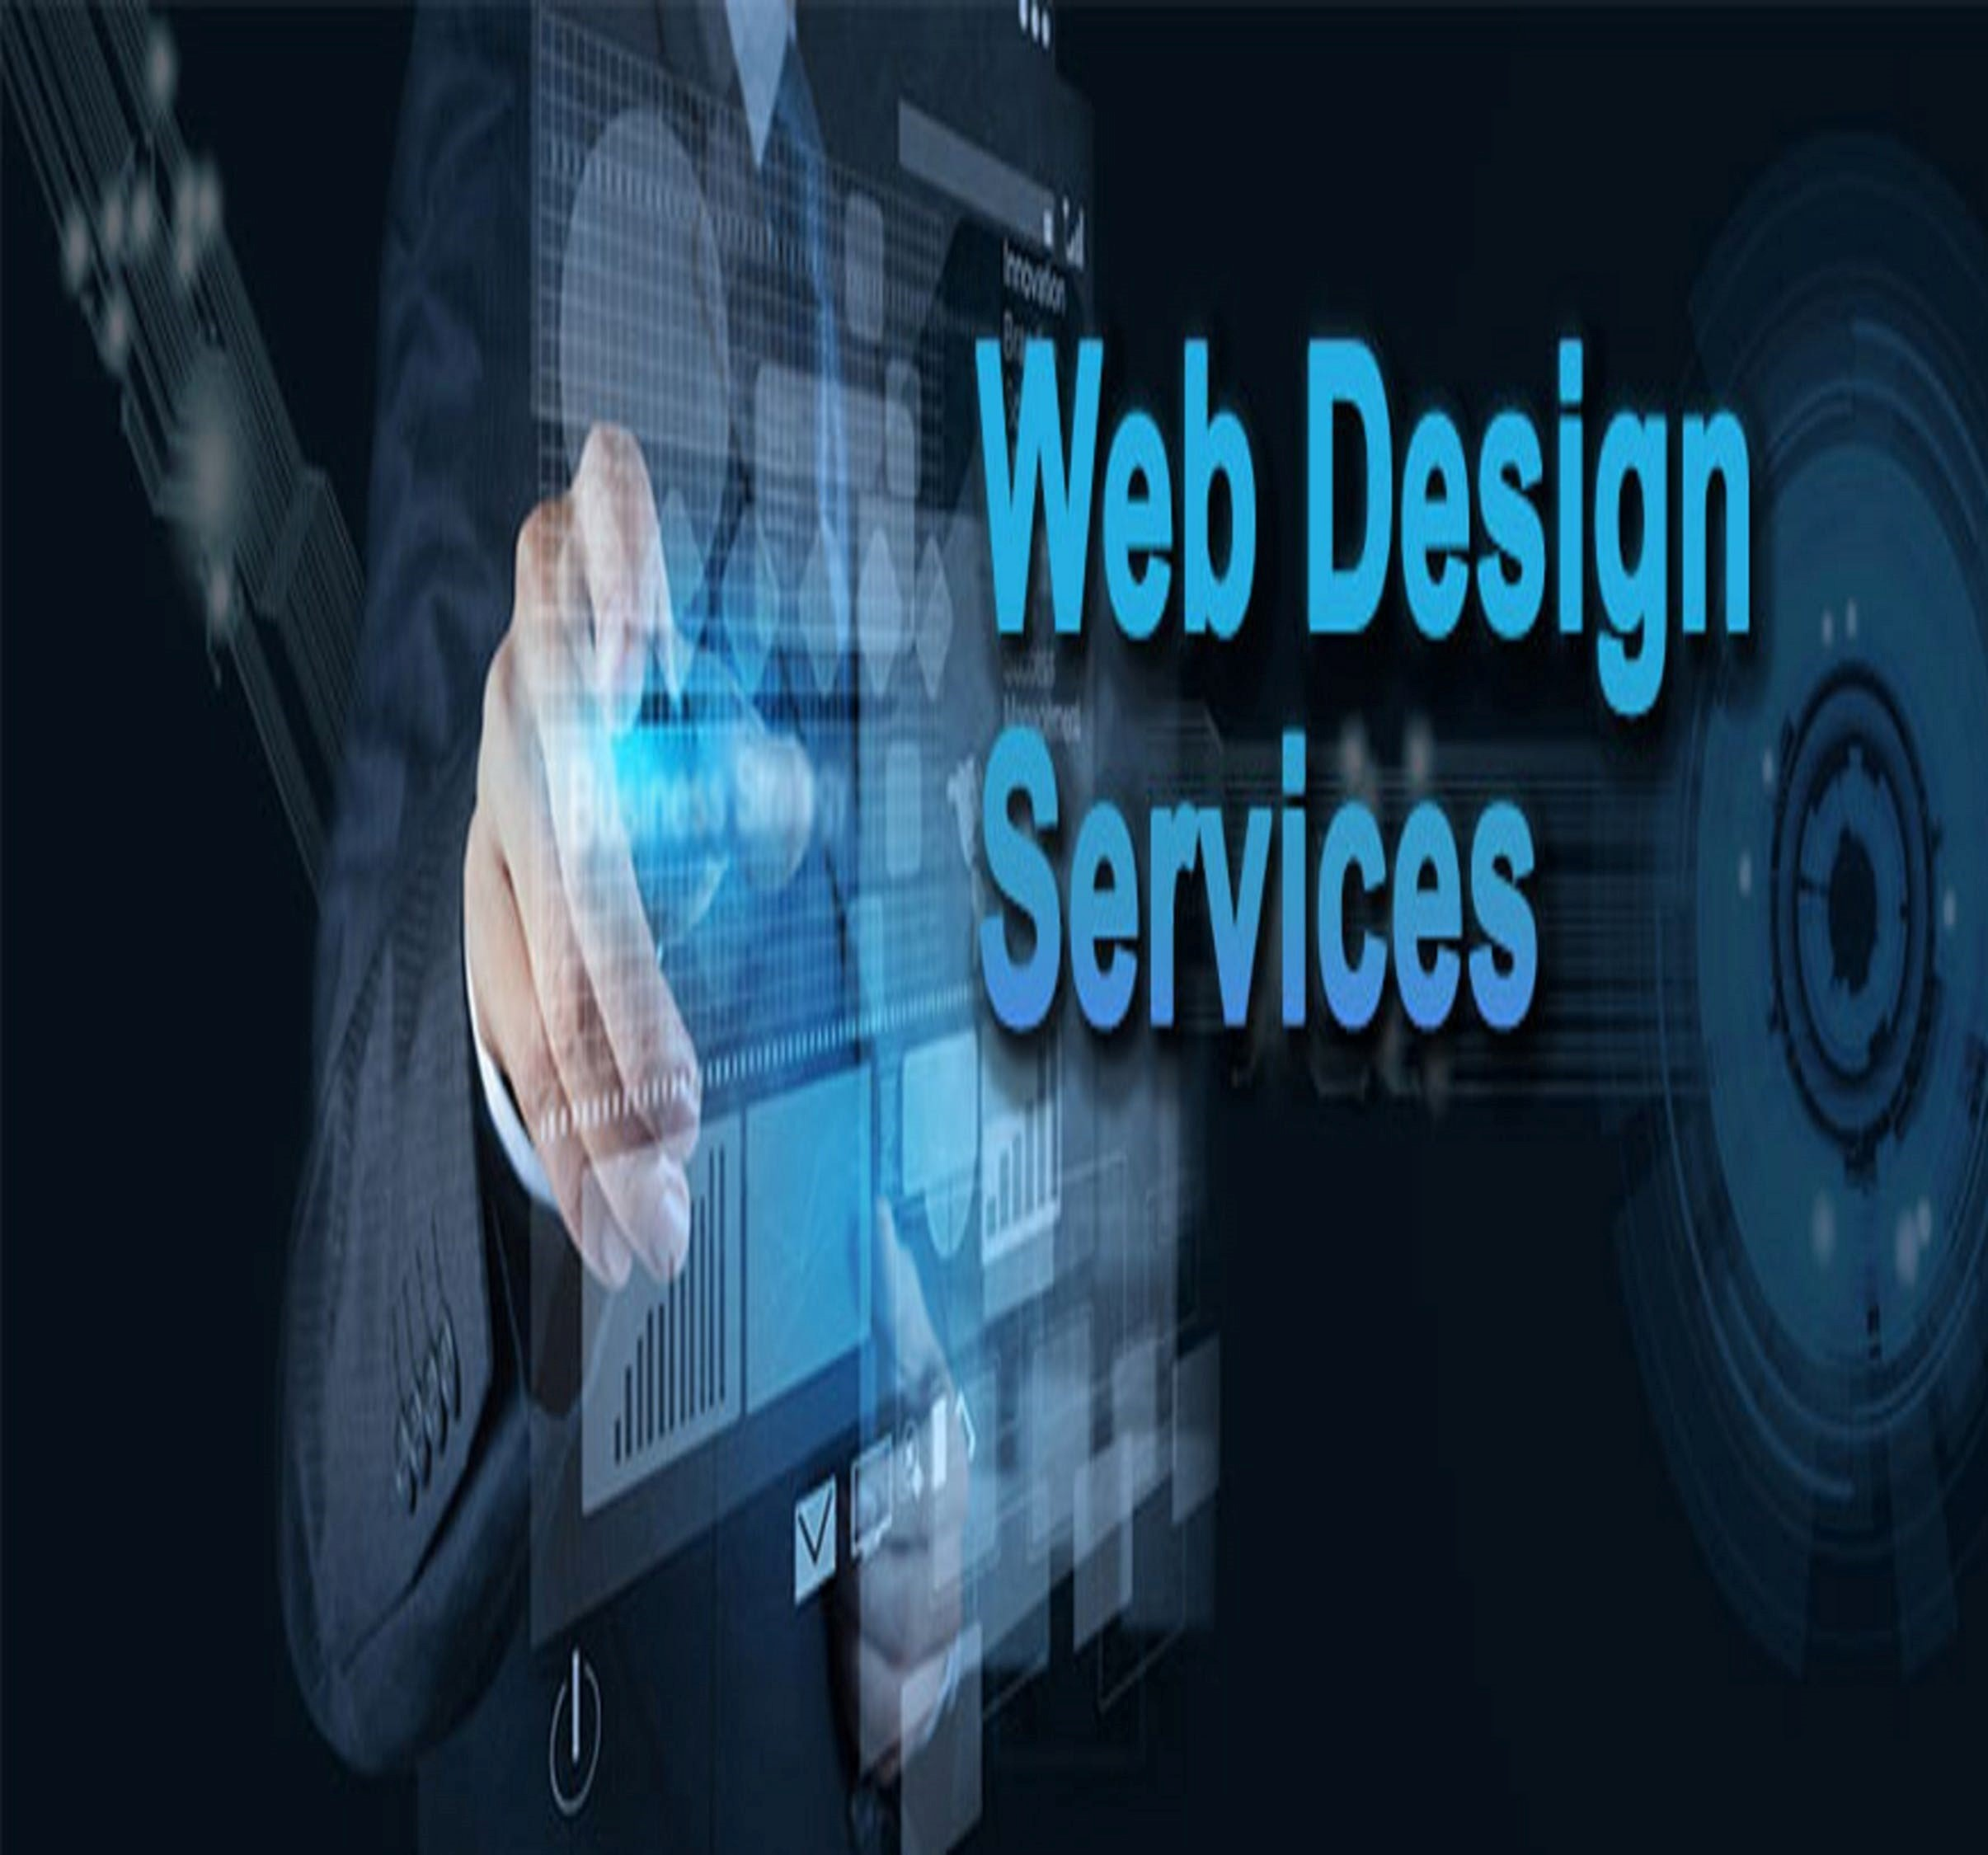 Website Design Services Are Valuable for Businesses